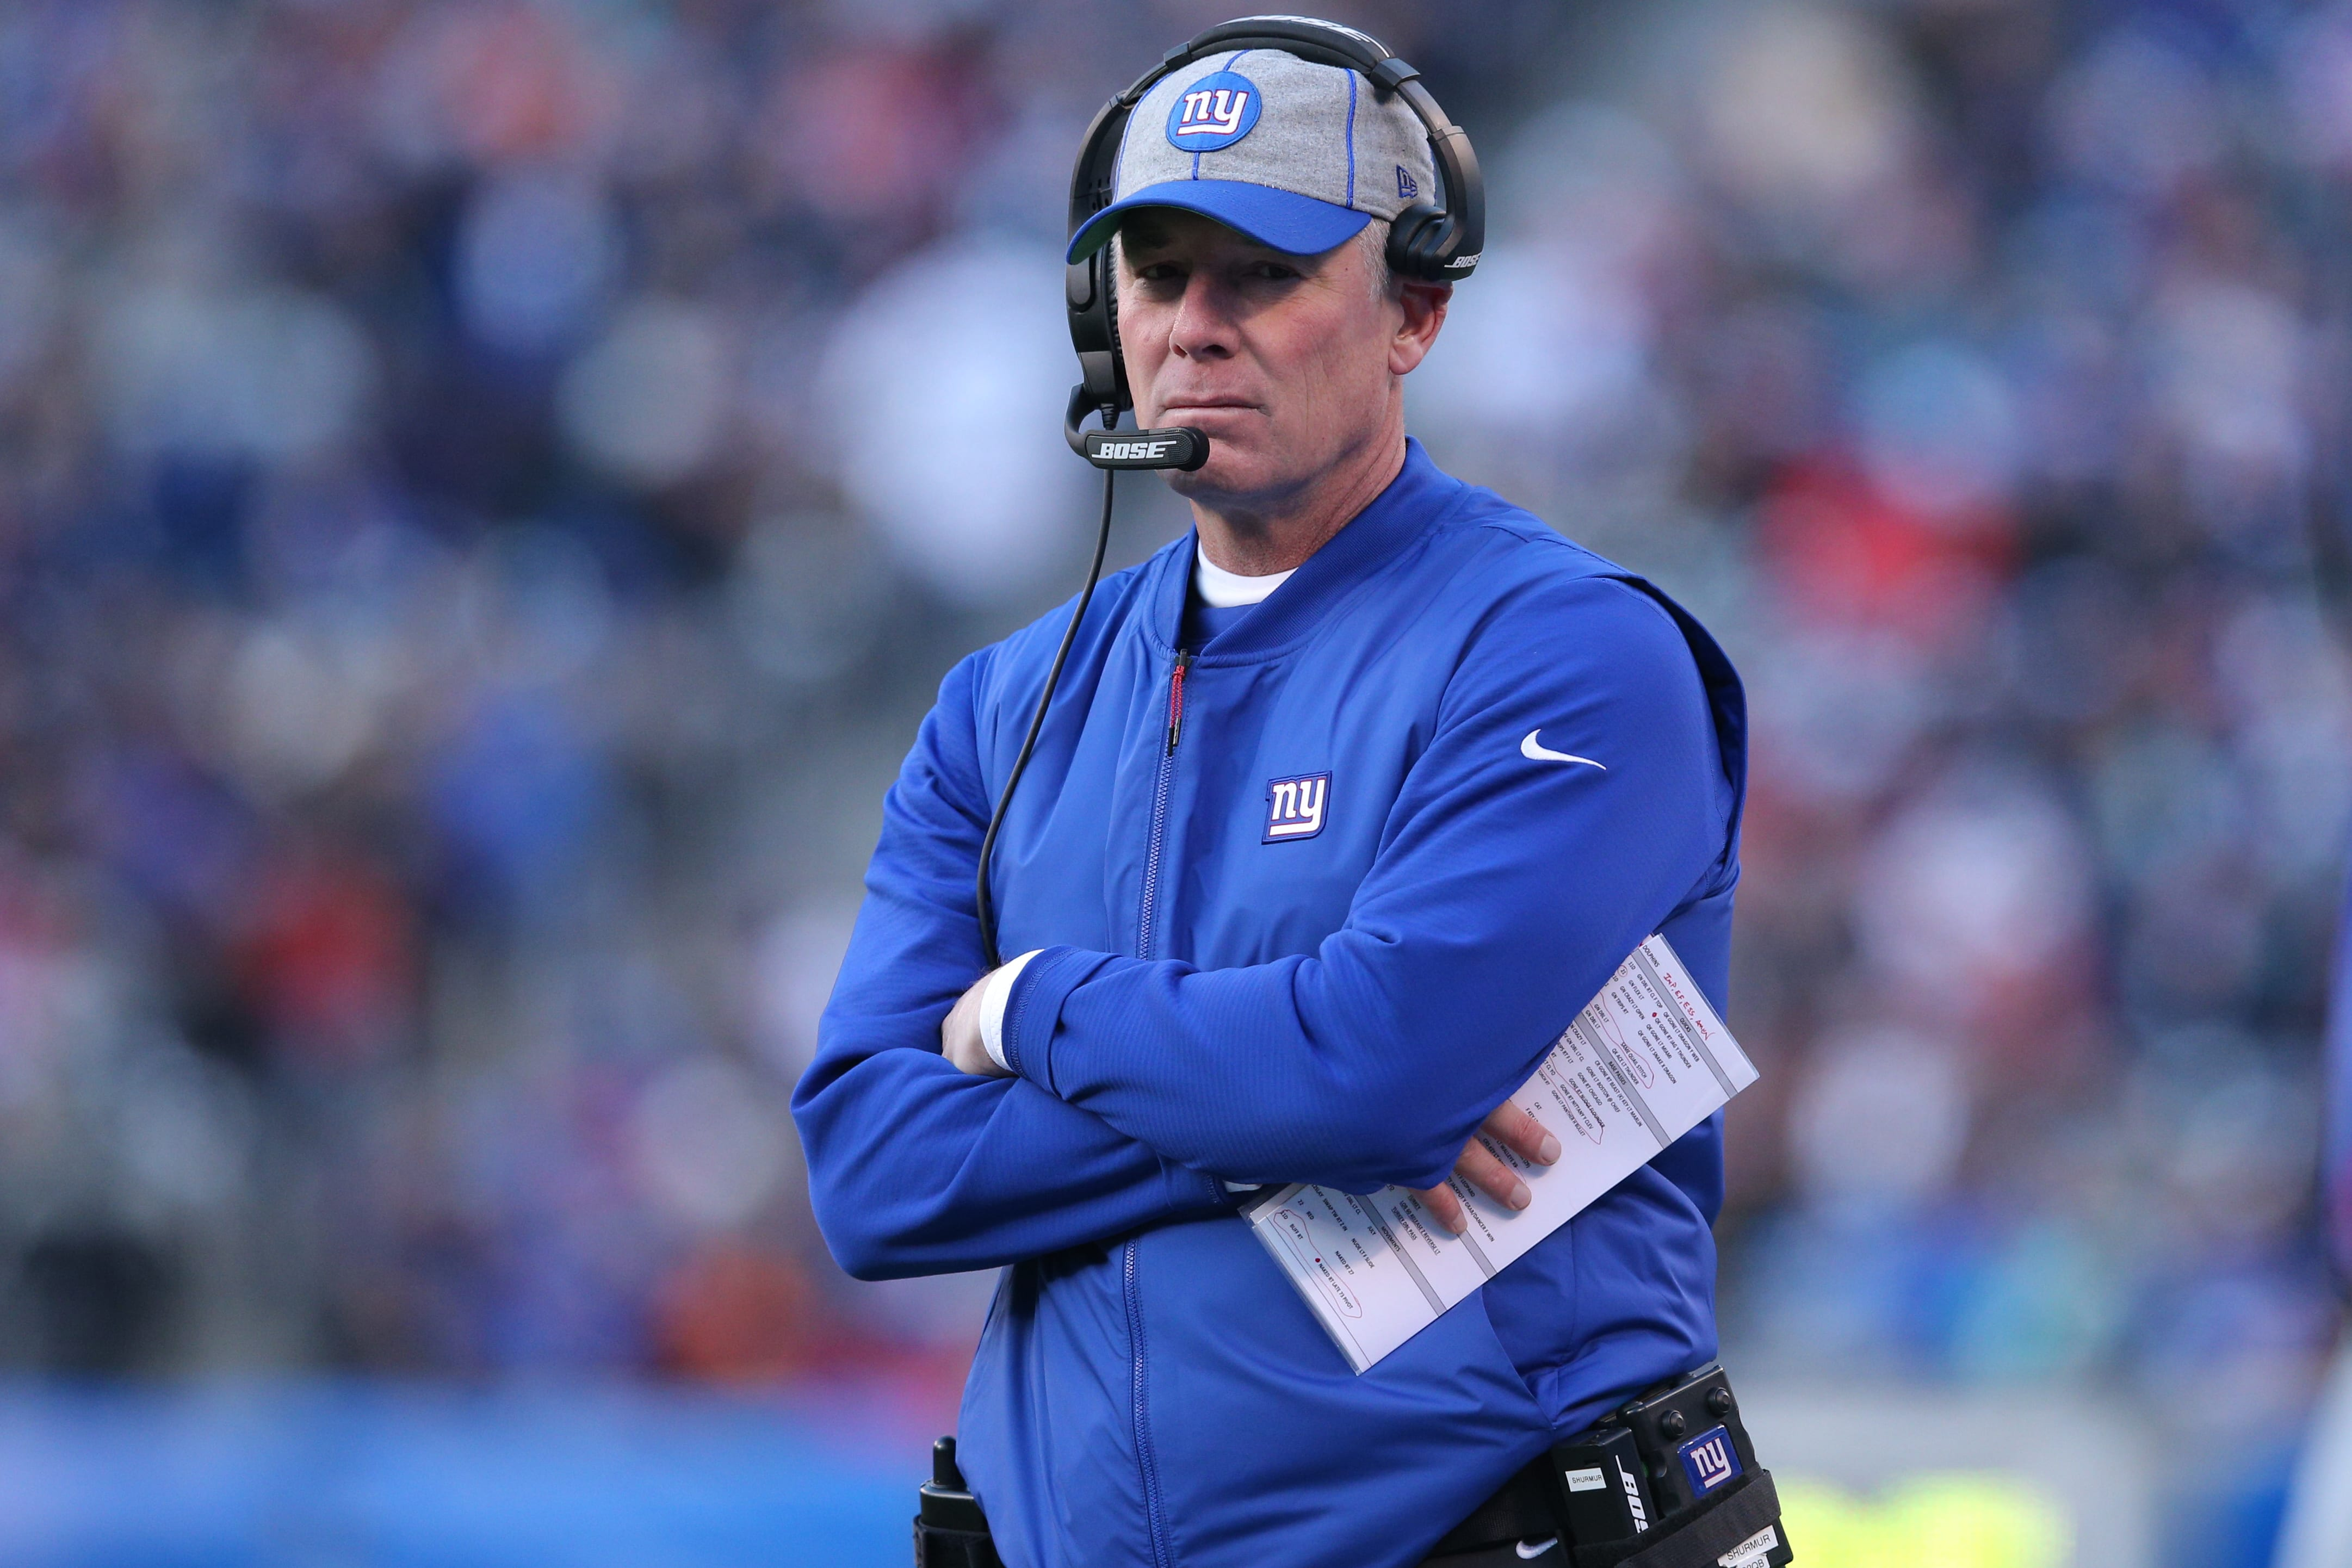 New York Giants, Pat Shurmur